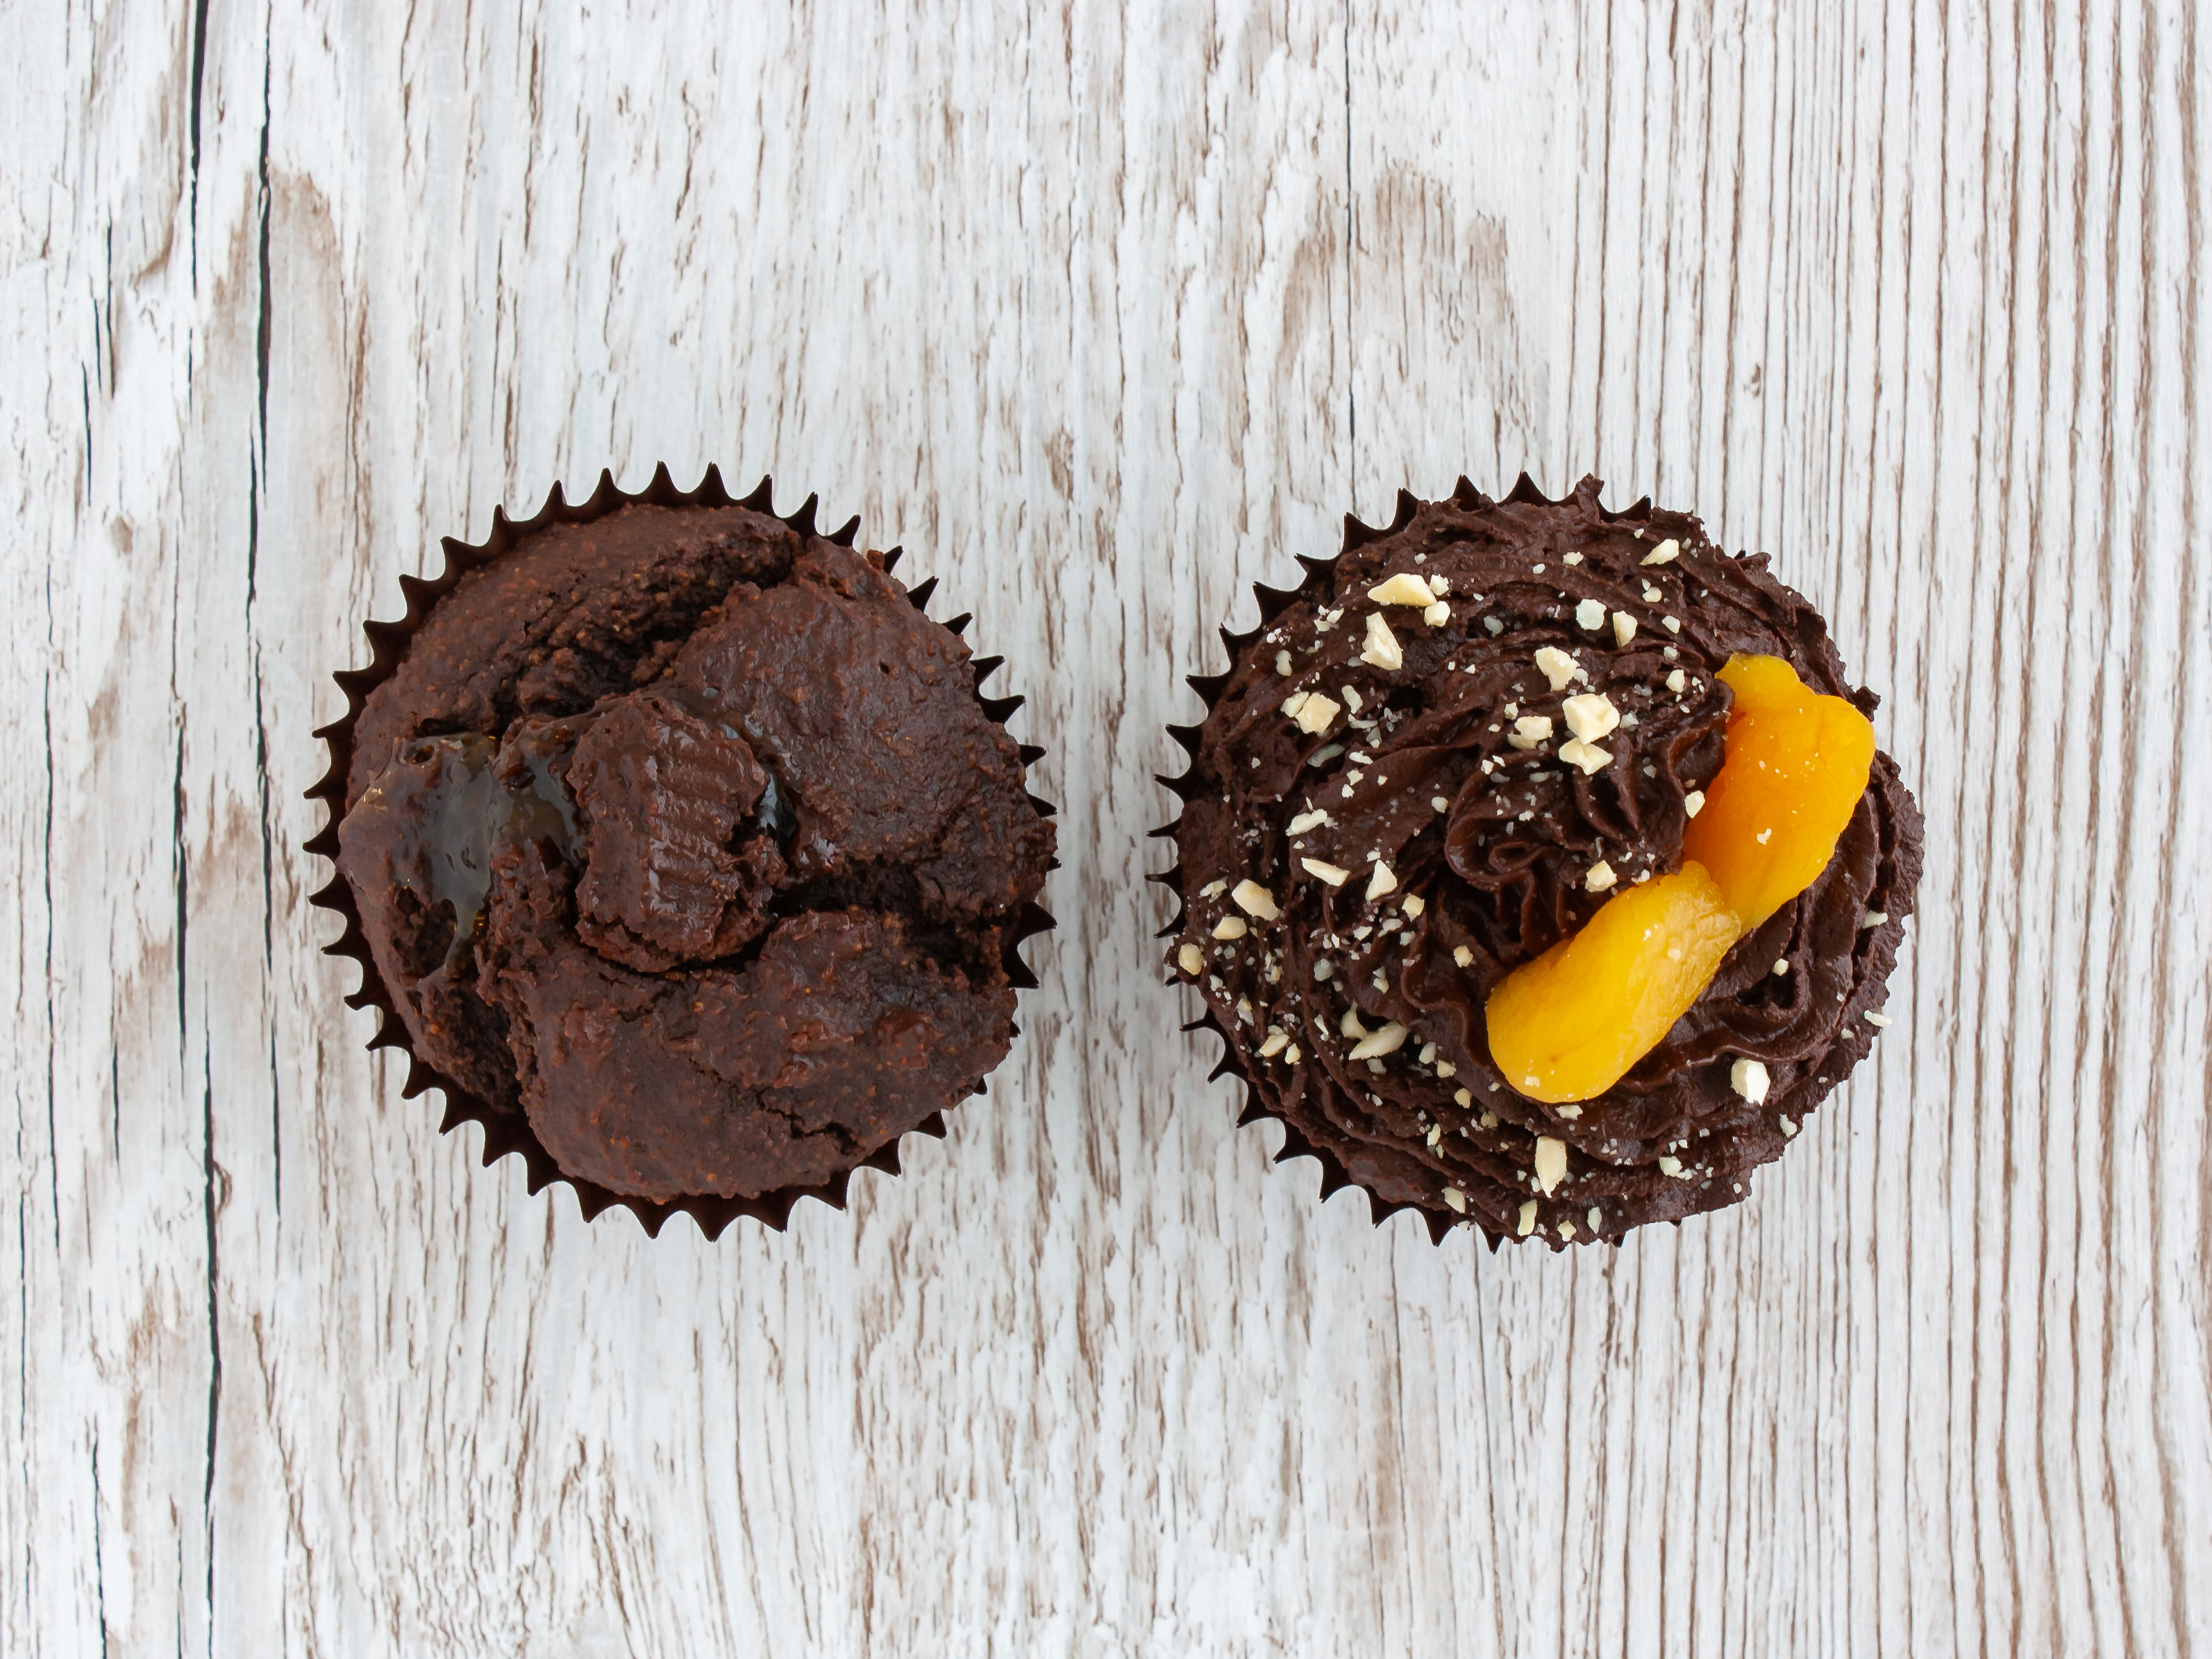 Step 5.2 of Gluten Free Vegan Chocolate Cupcakes with Apricot Jam Recipe